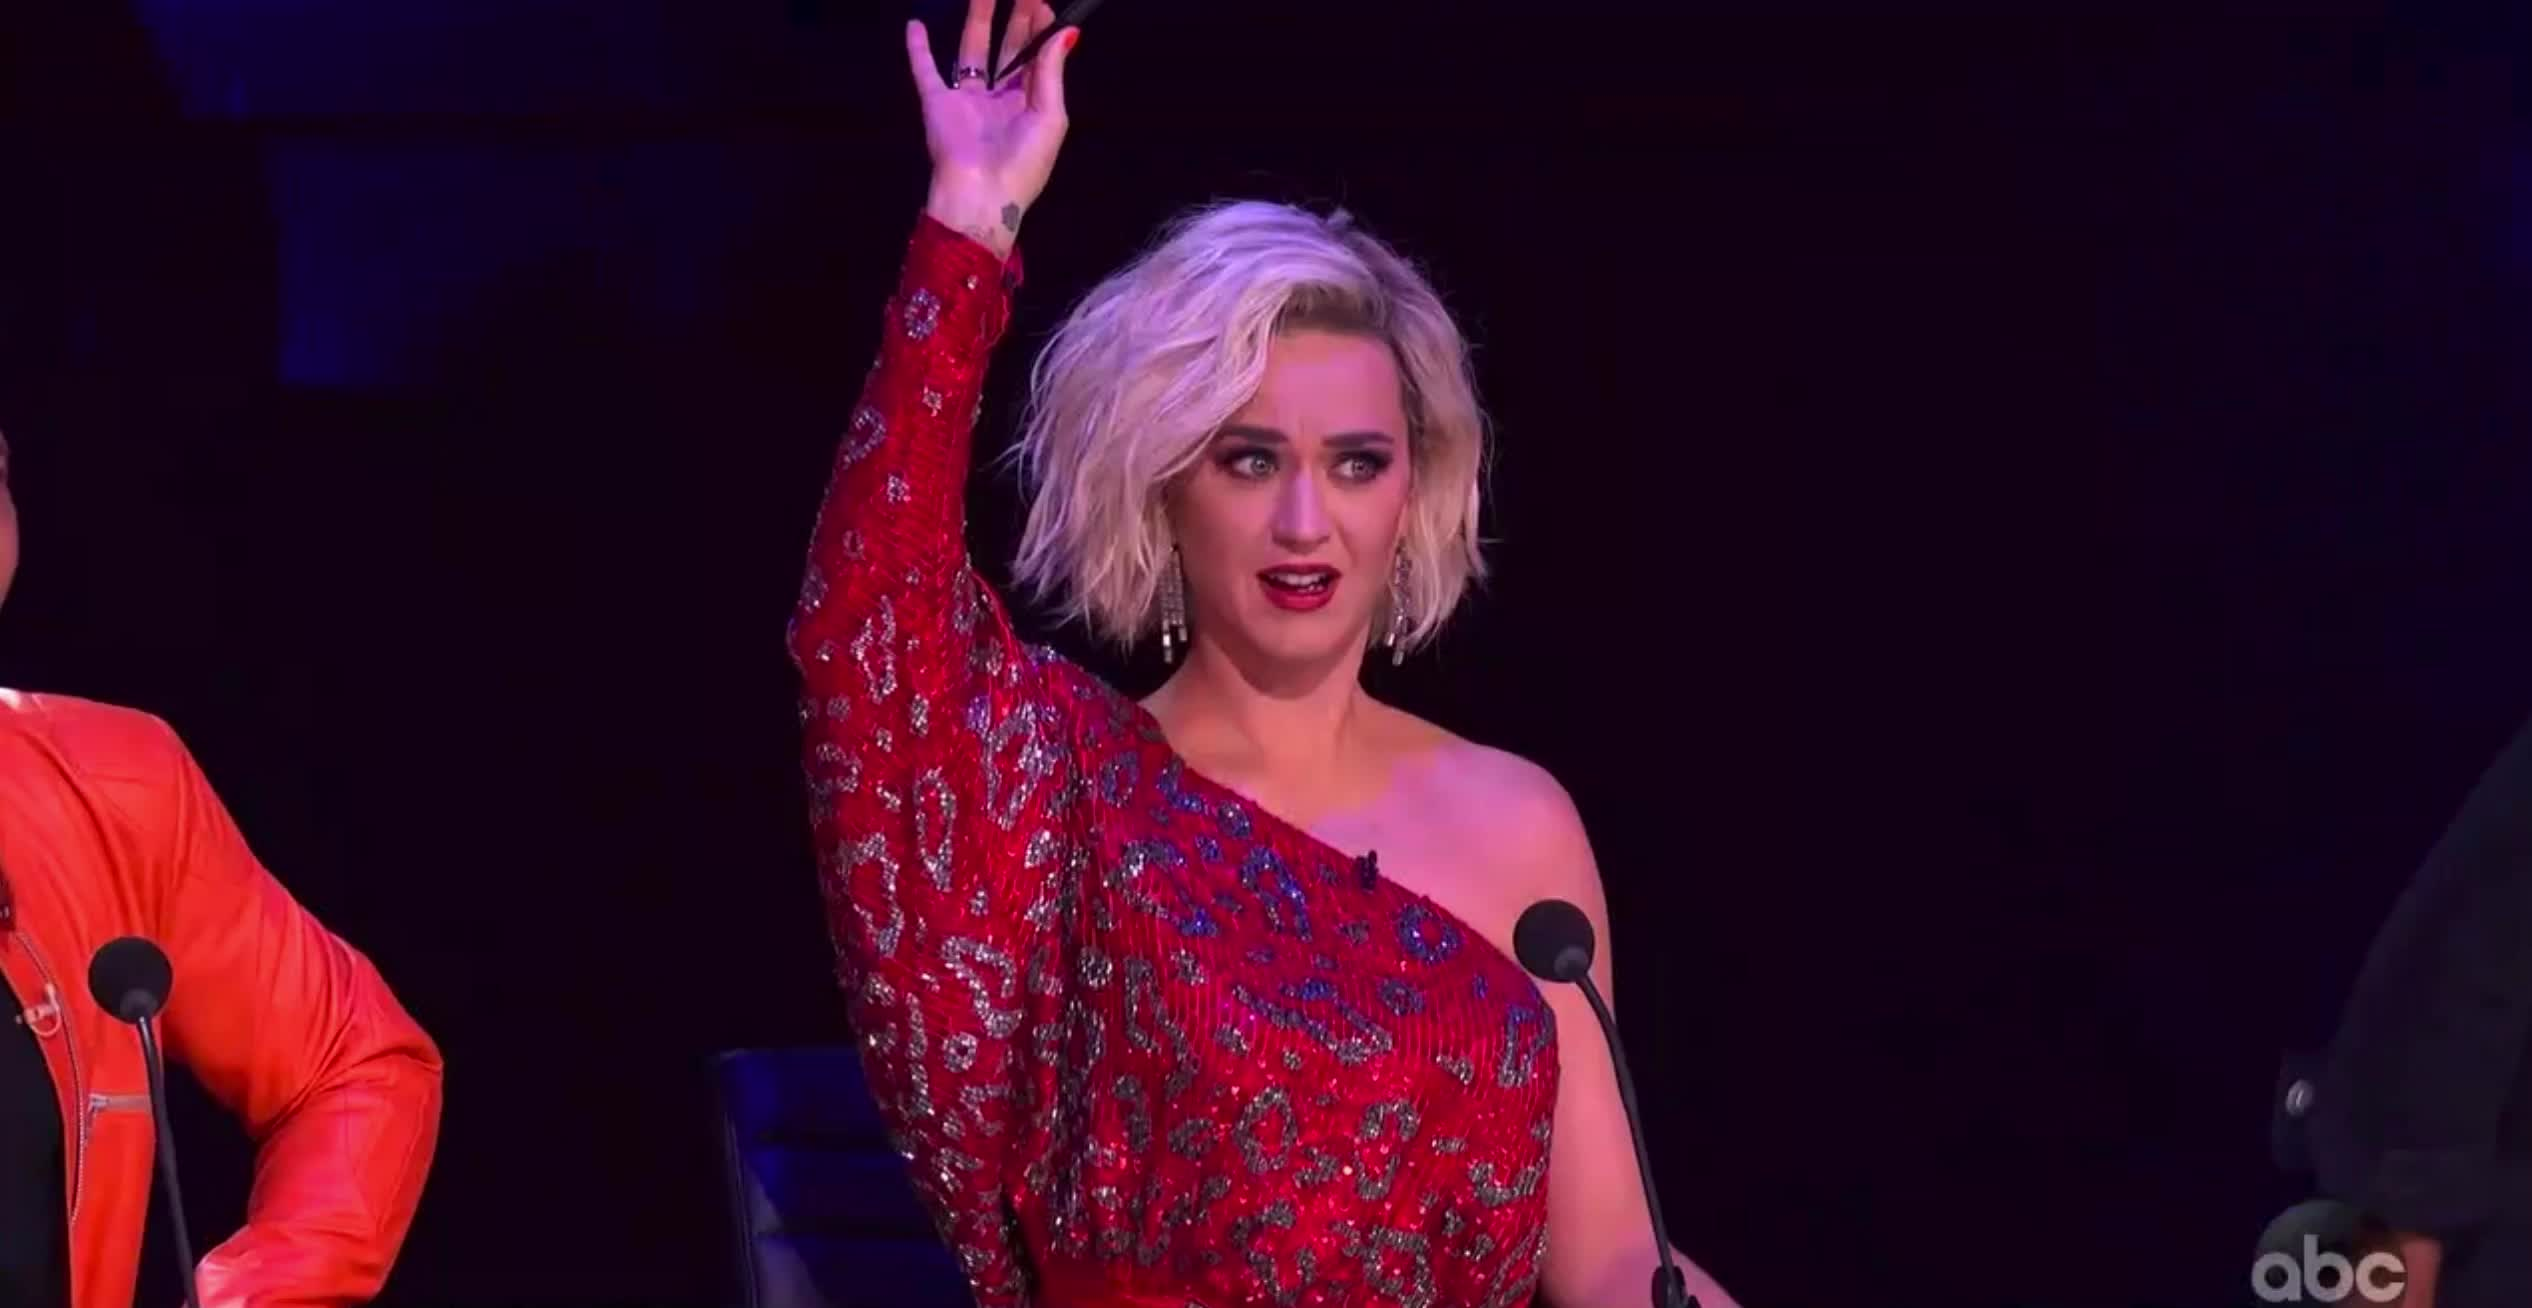 american idol, american idol season 17, americanidol, katy perry, lionel richie, luke bryan, ryan seacrest, season 17, shocked, whoa, woah, wow, American Idol Katy In Awe Of Uche's Moves GIFs